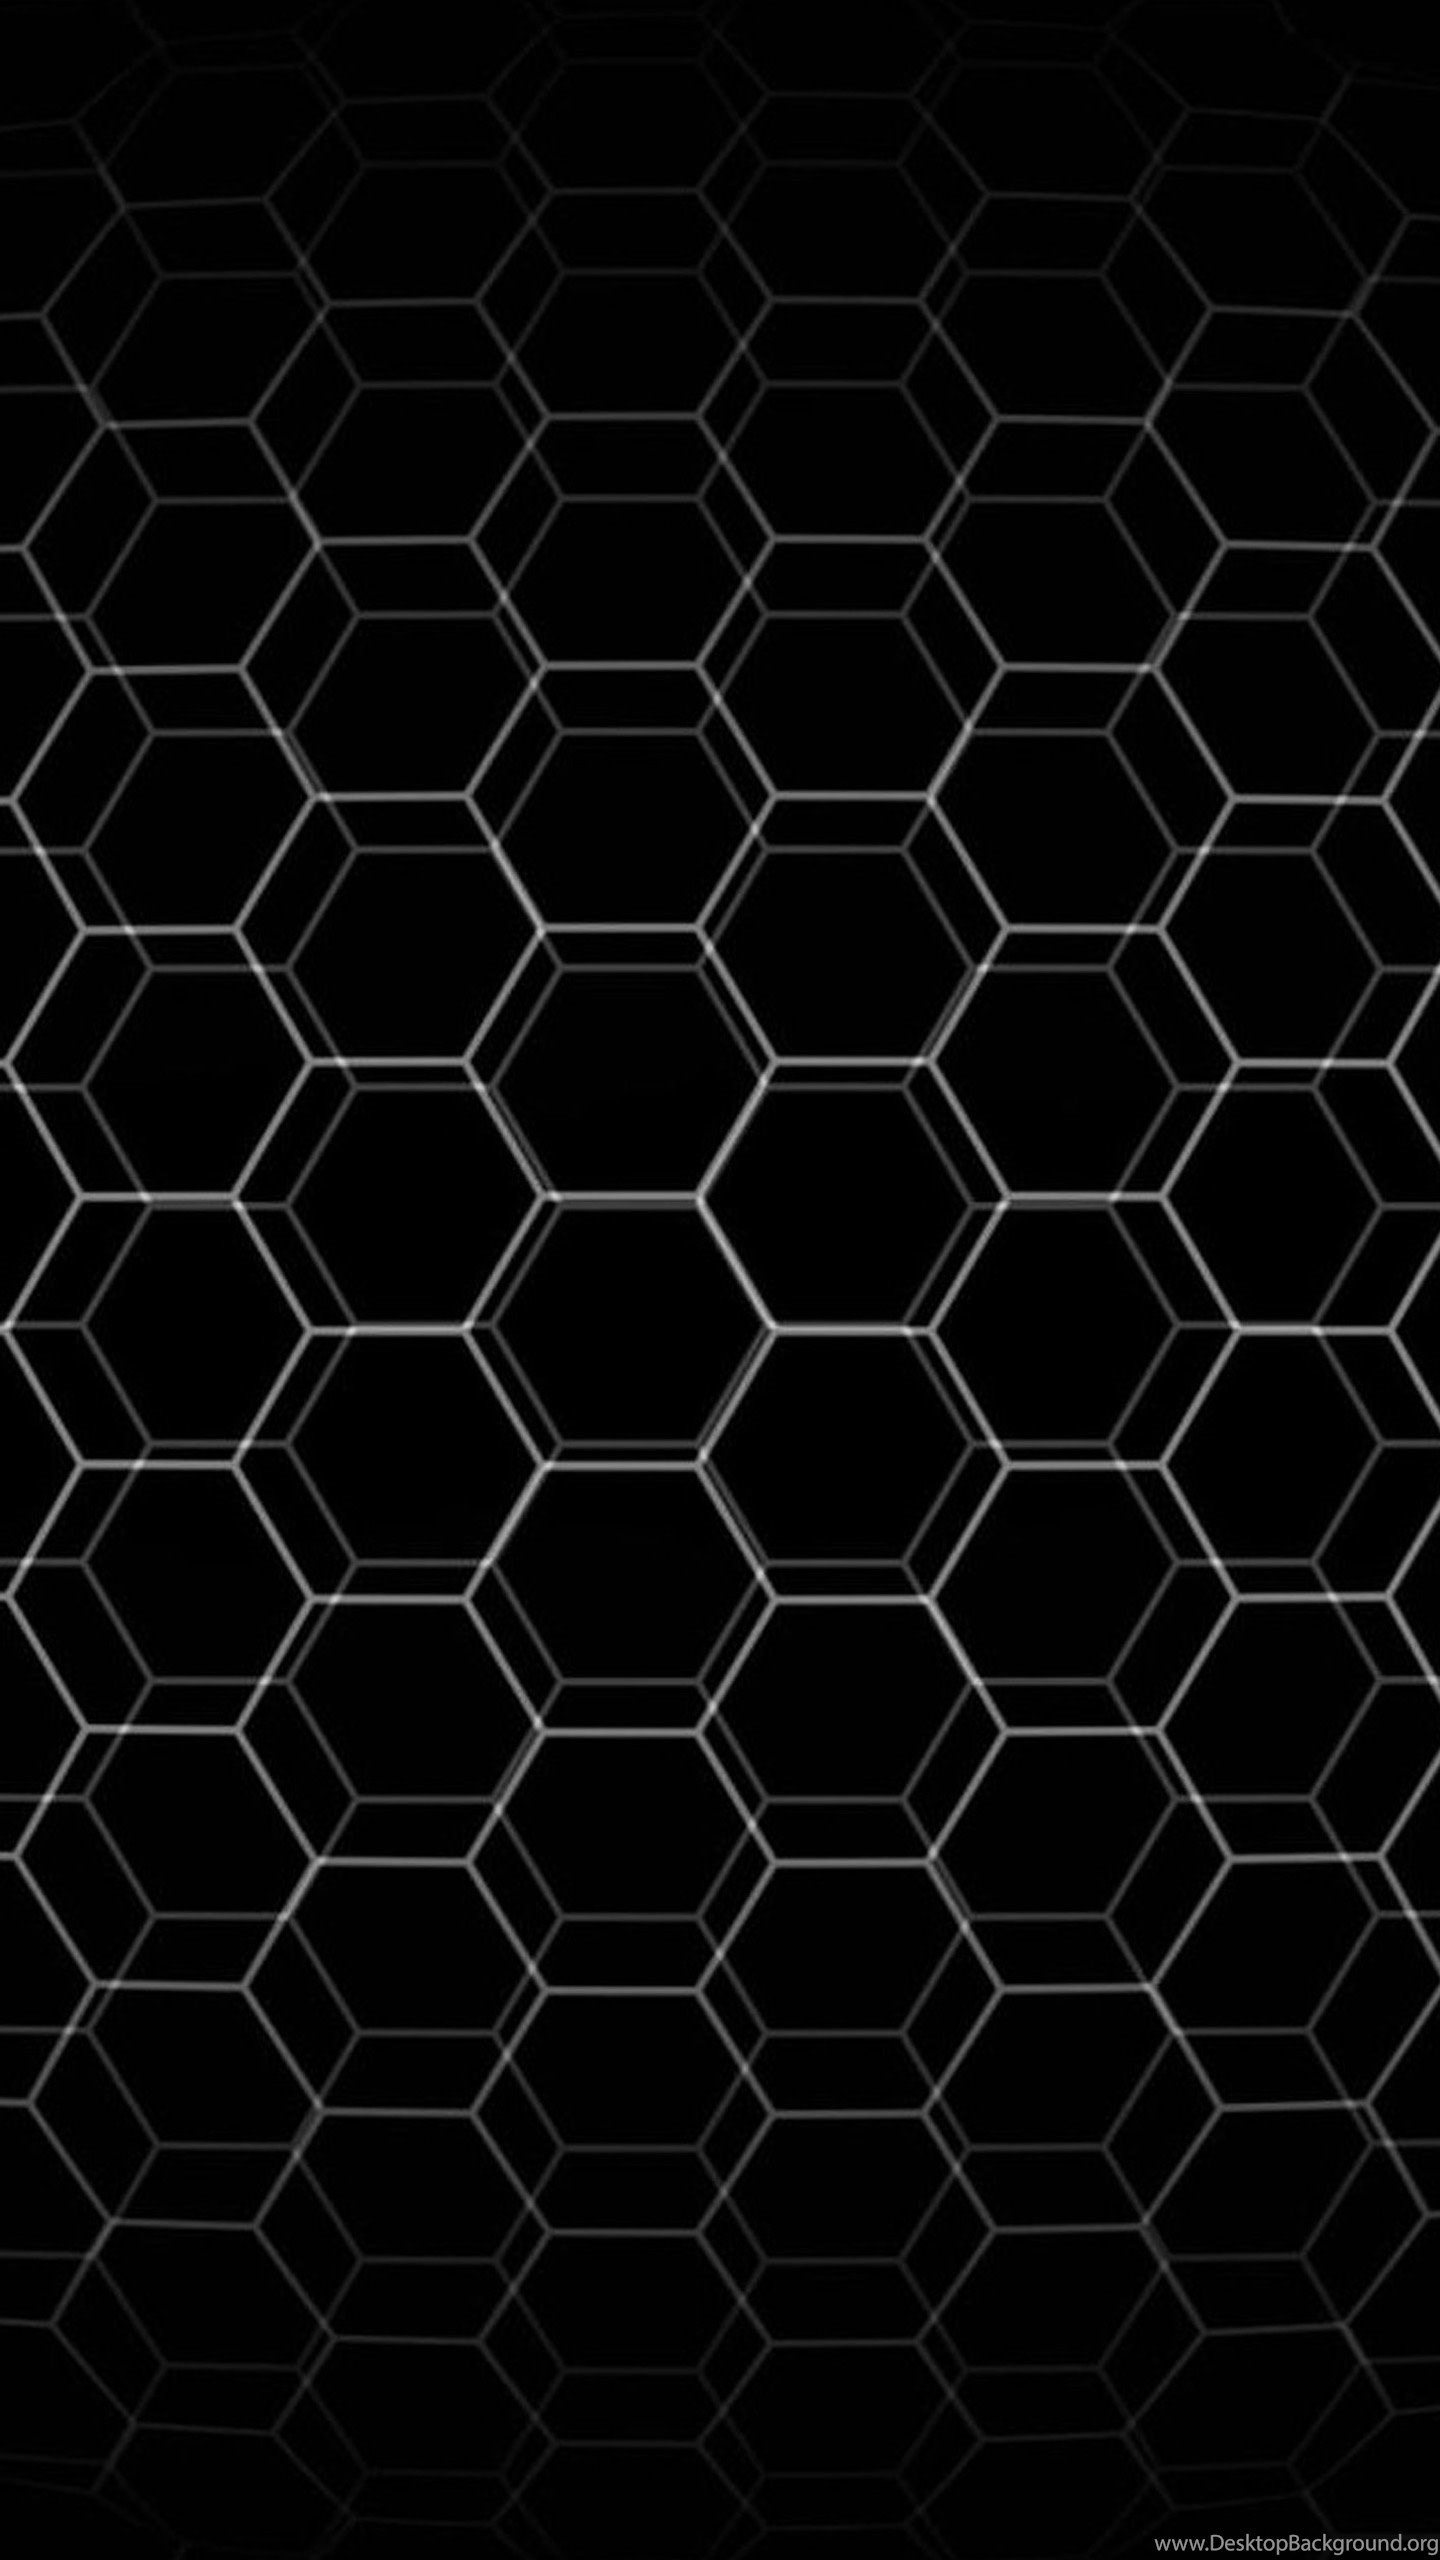 Wallpapers Samsung Galaxy S6 Reticular Black Awesome 1440 X 2560 Desktop Background